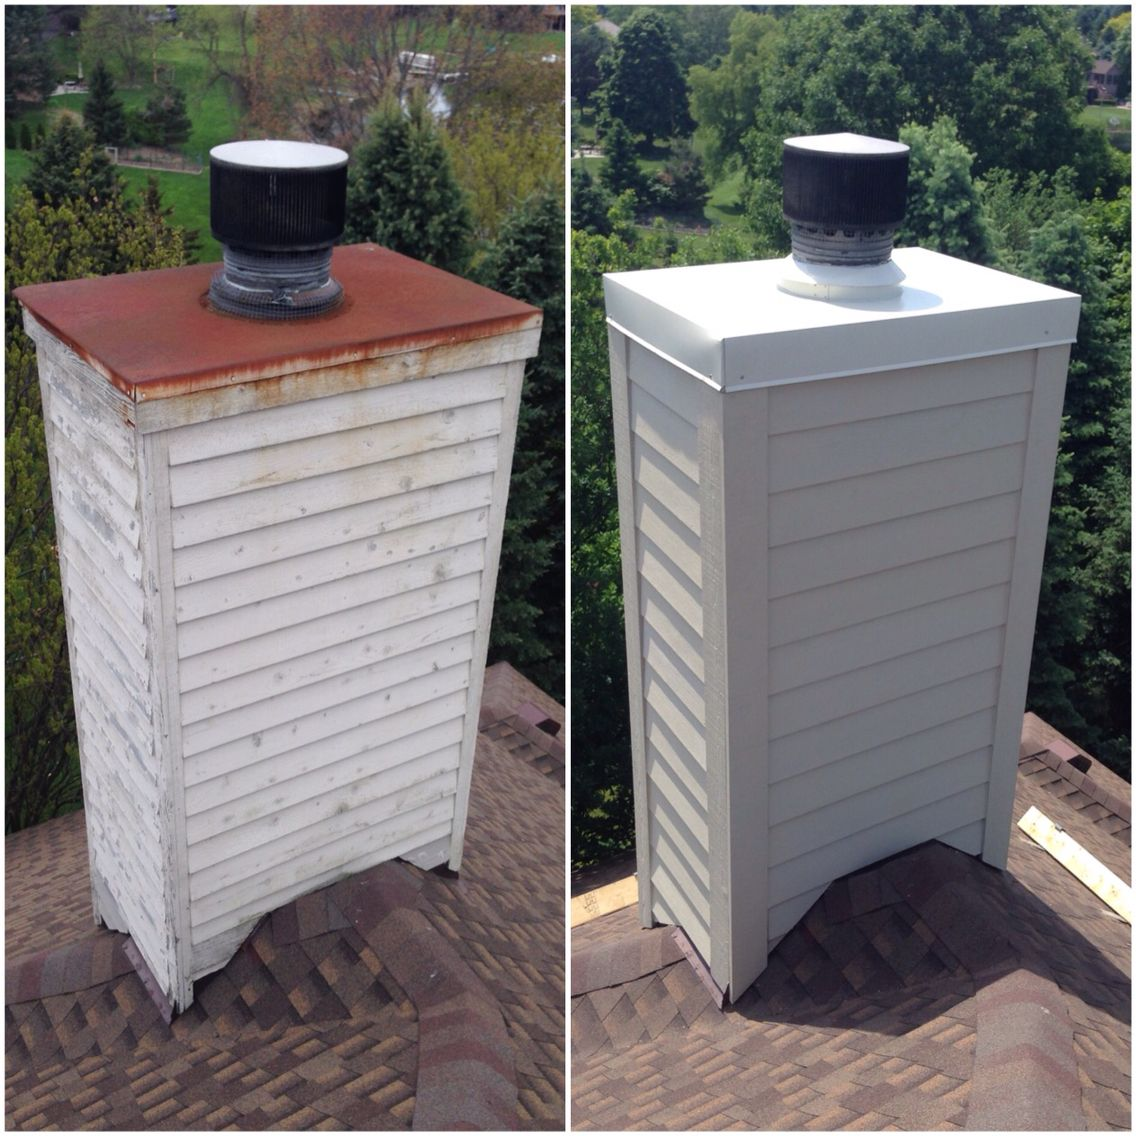 This old (rotten) wood chimney got the makeover it